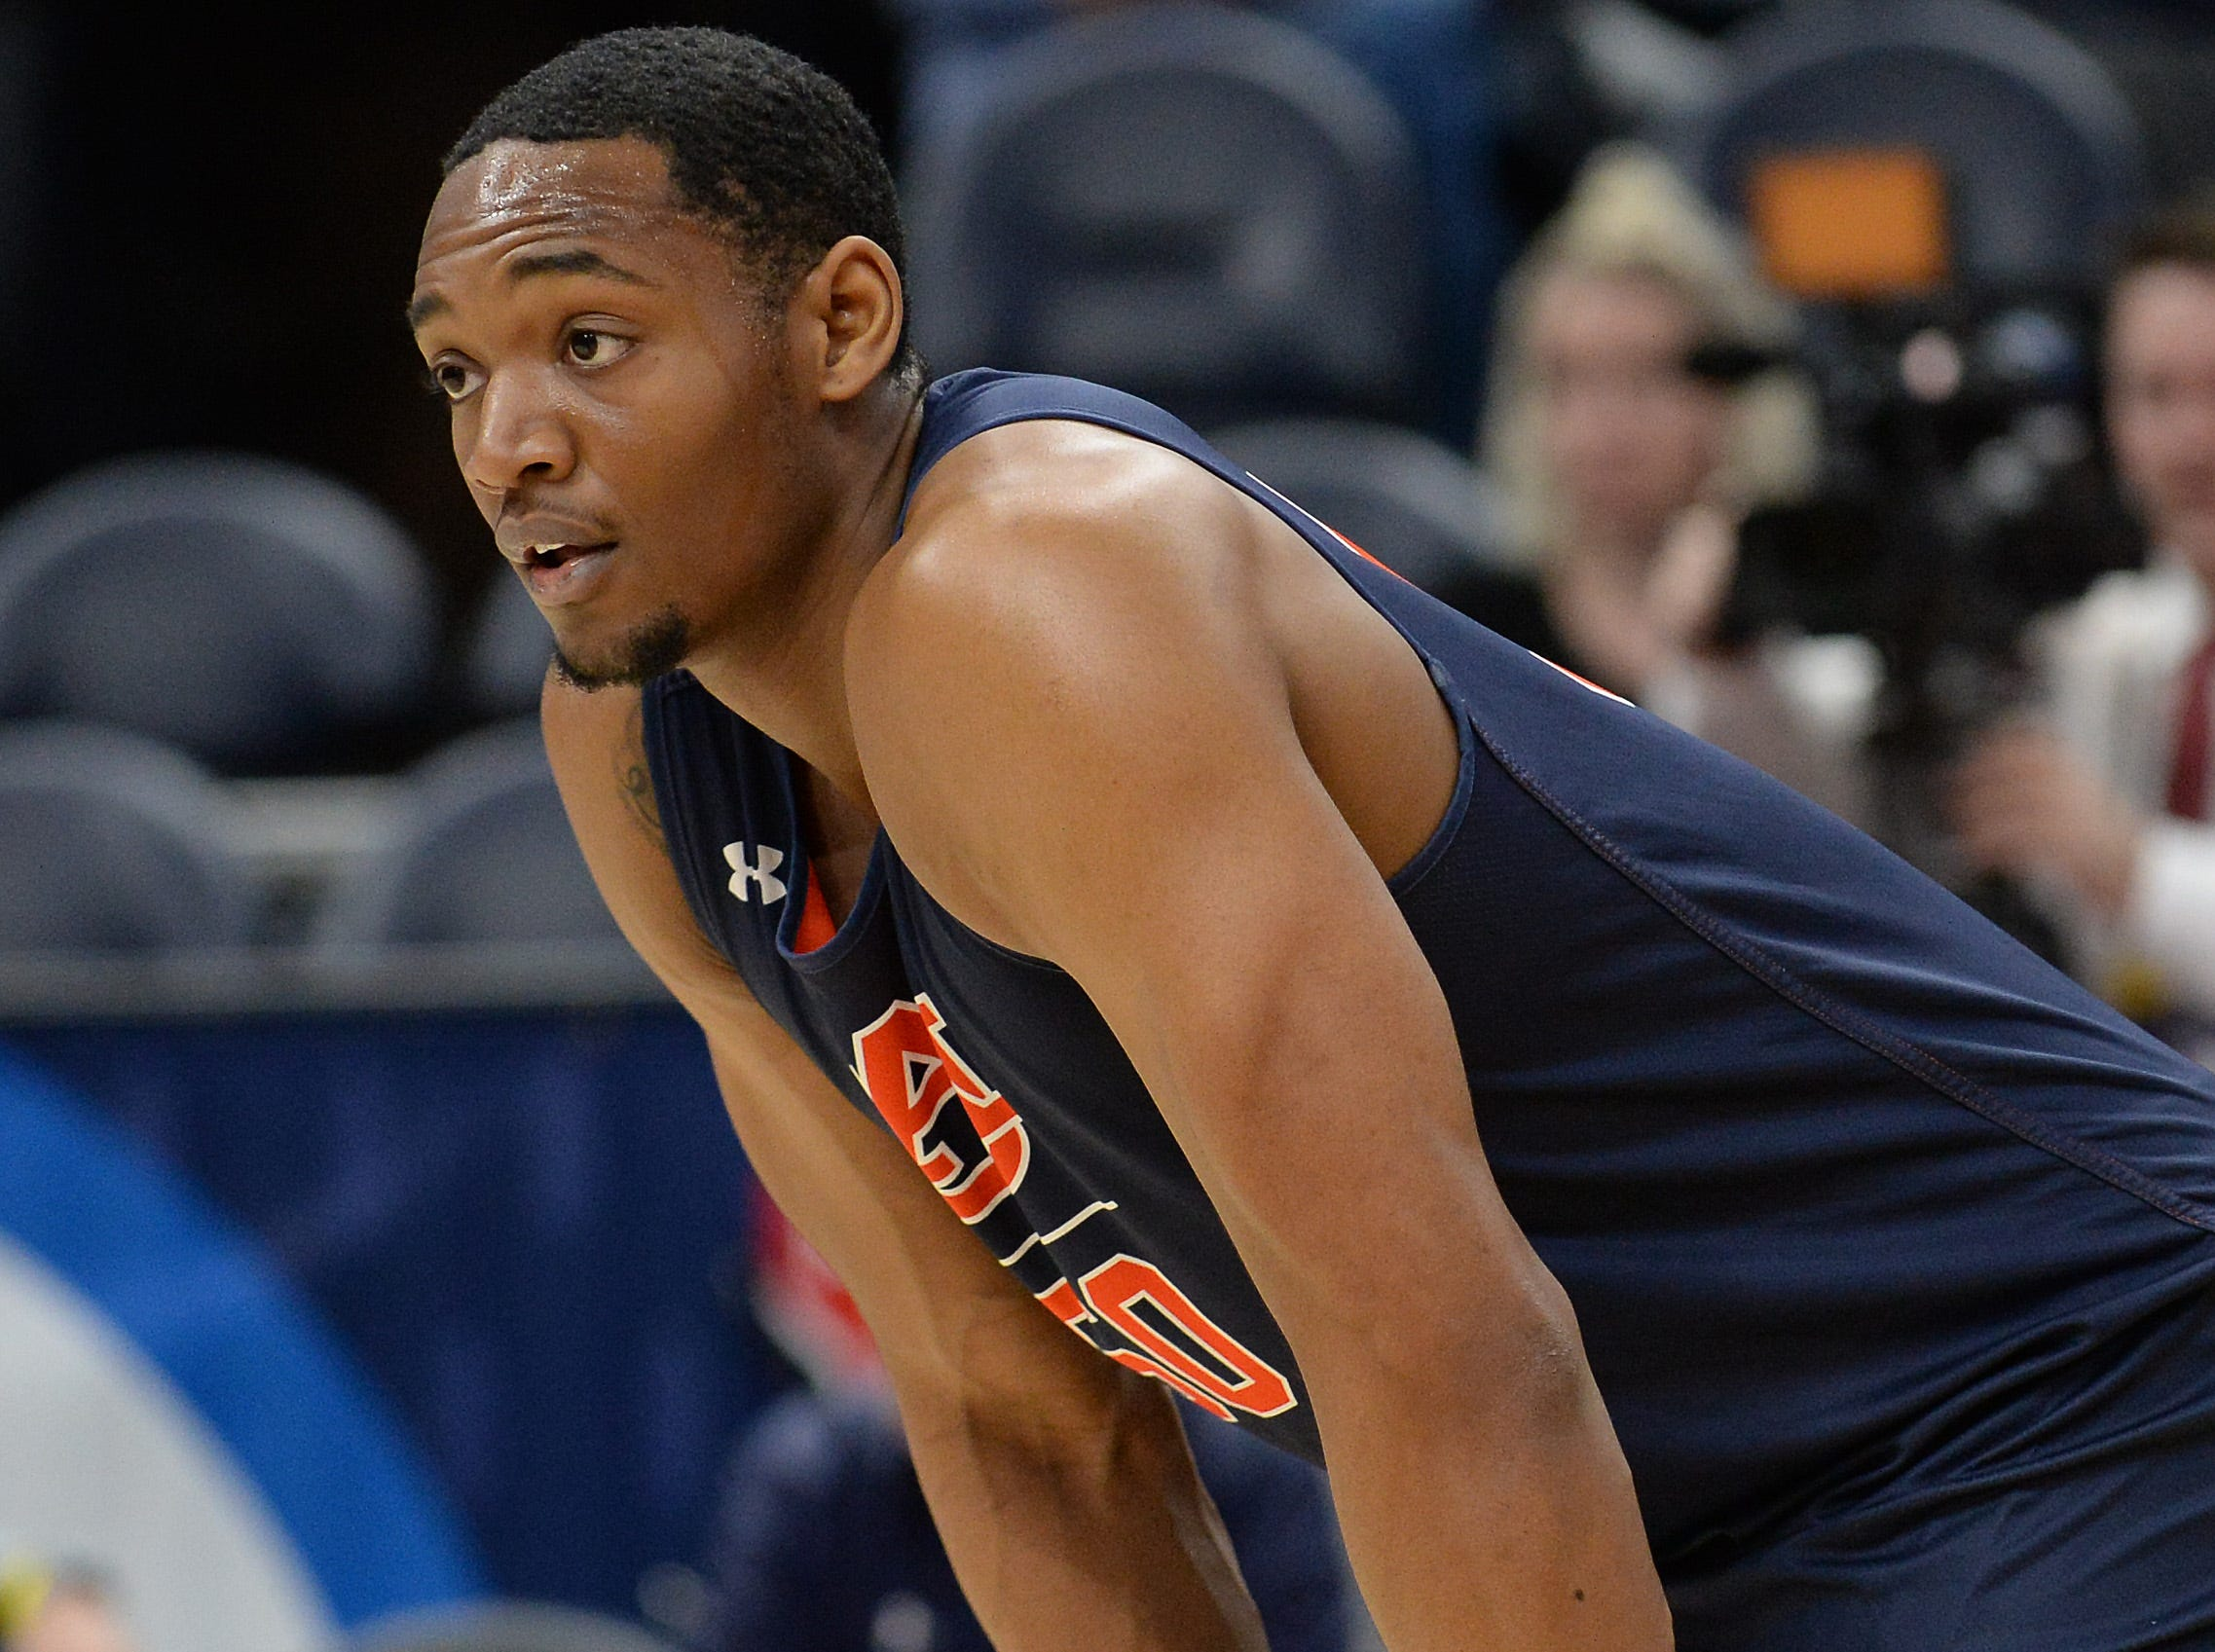 March 20, 2019; Salt Lake City, UT, USA; Auburn Tigers center Austin Wiley (50) during practice before the first round of the 2019 NCAA Tournament at Vivint Smart Home Arena. Mandatory Credit: Gary A. Vasquez-USA TODAY Sports